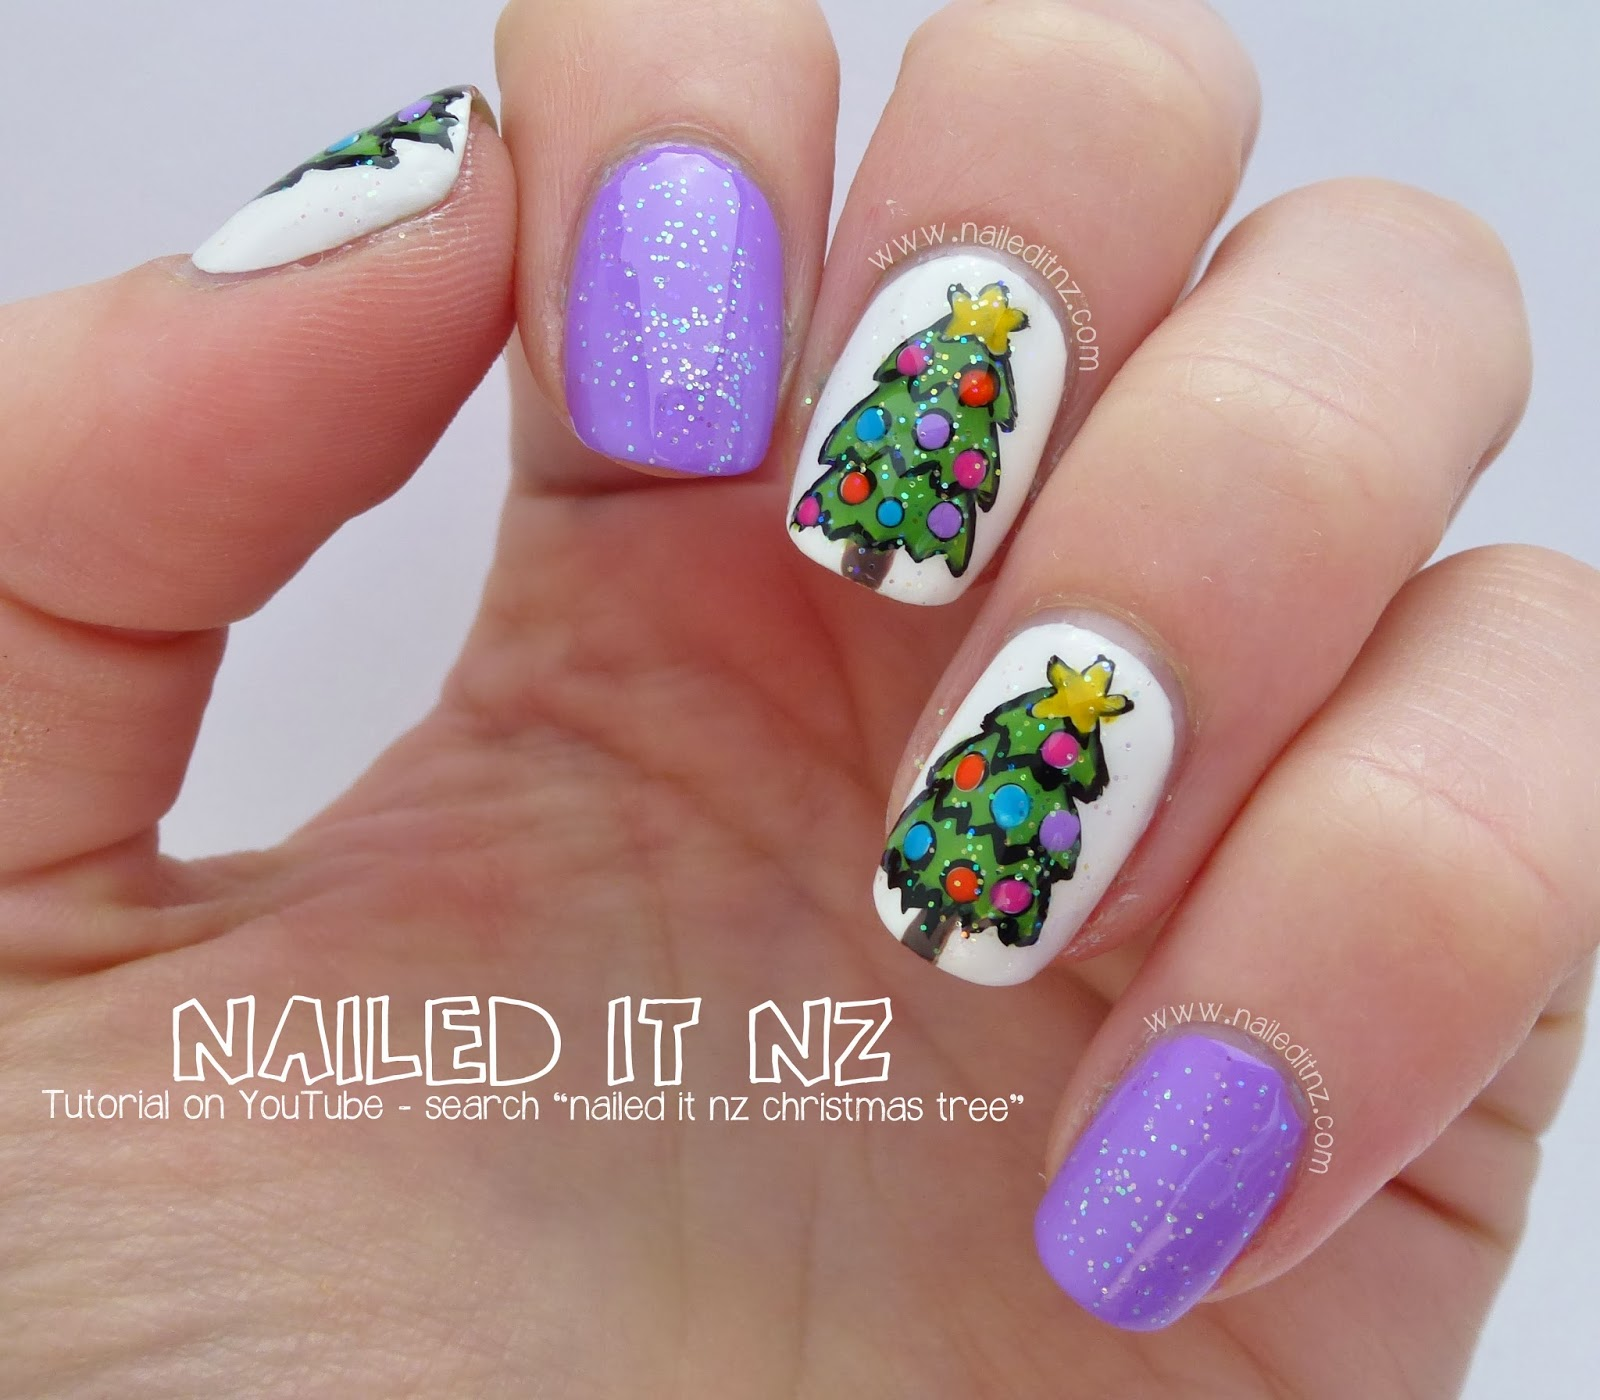 Holiday Nail Art Tutorials: Christmas Tree Nail Art Tutorial